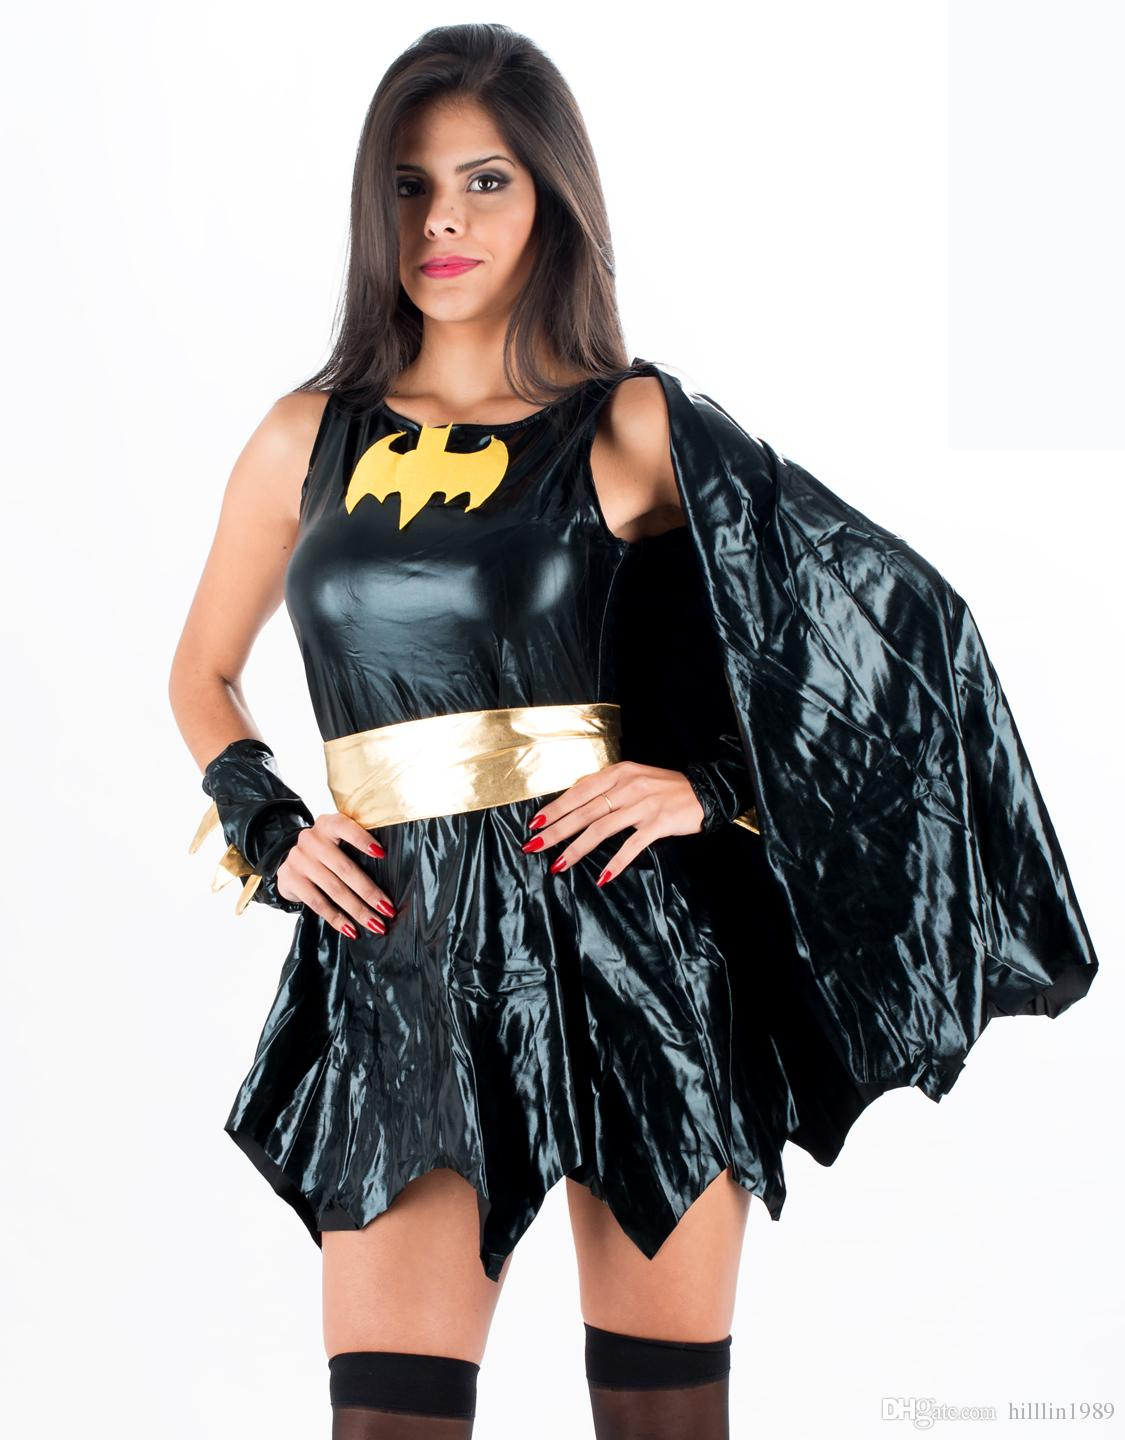 2018 classic america movie bat girl fancy dress halloween costume uniform temptation famous sexy superhero costumes w208802 from hilllin1989